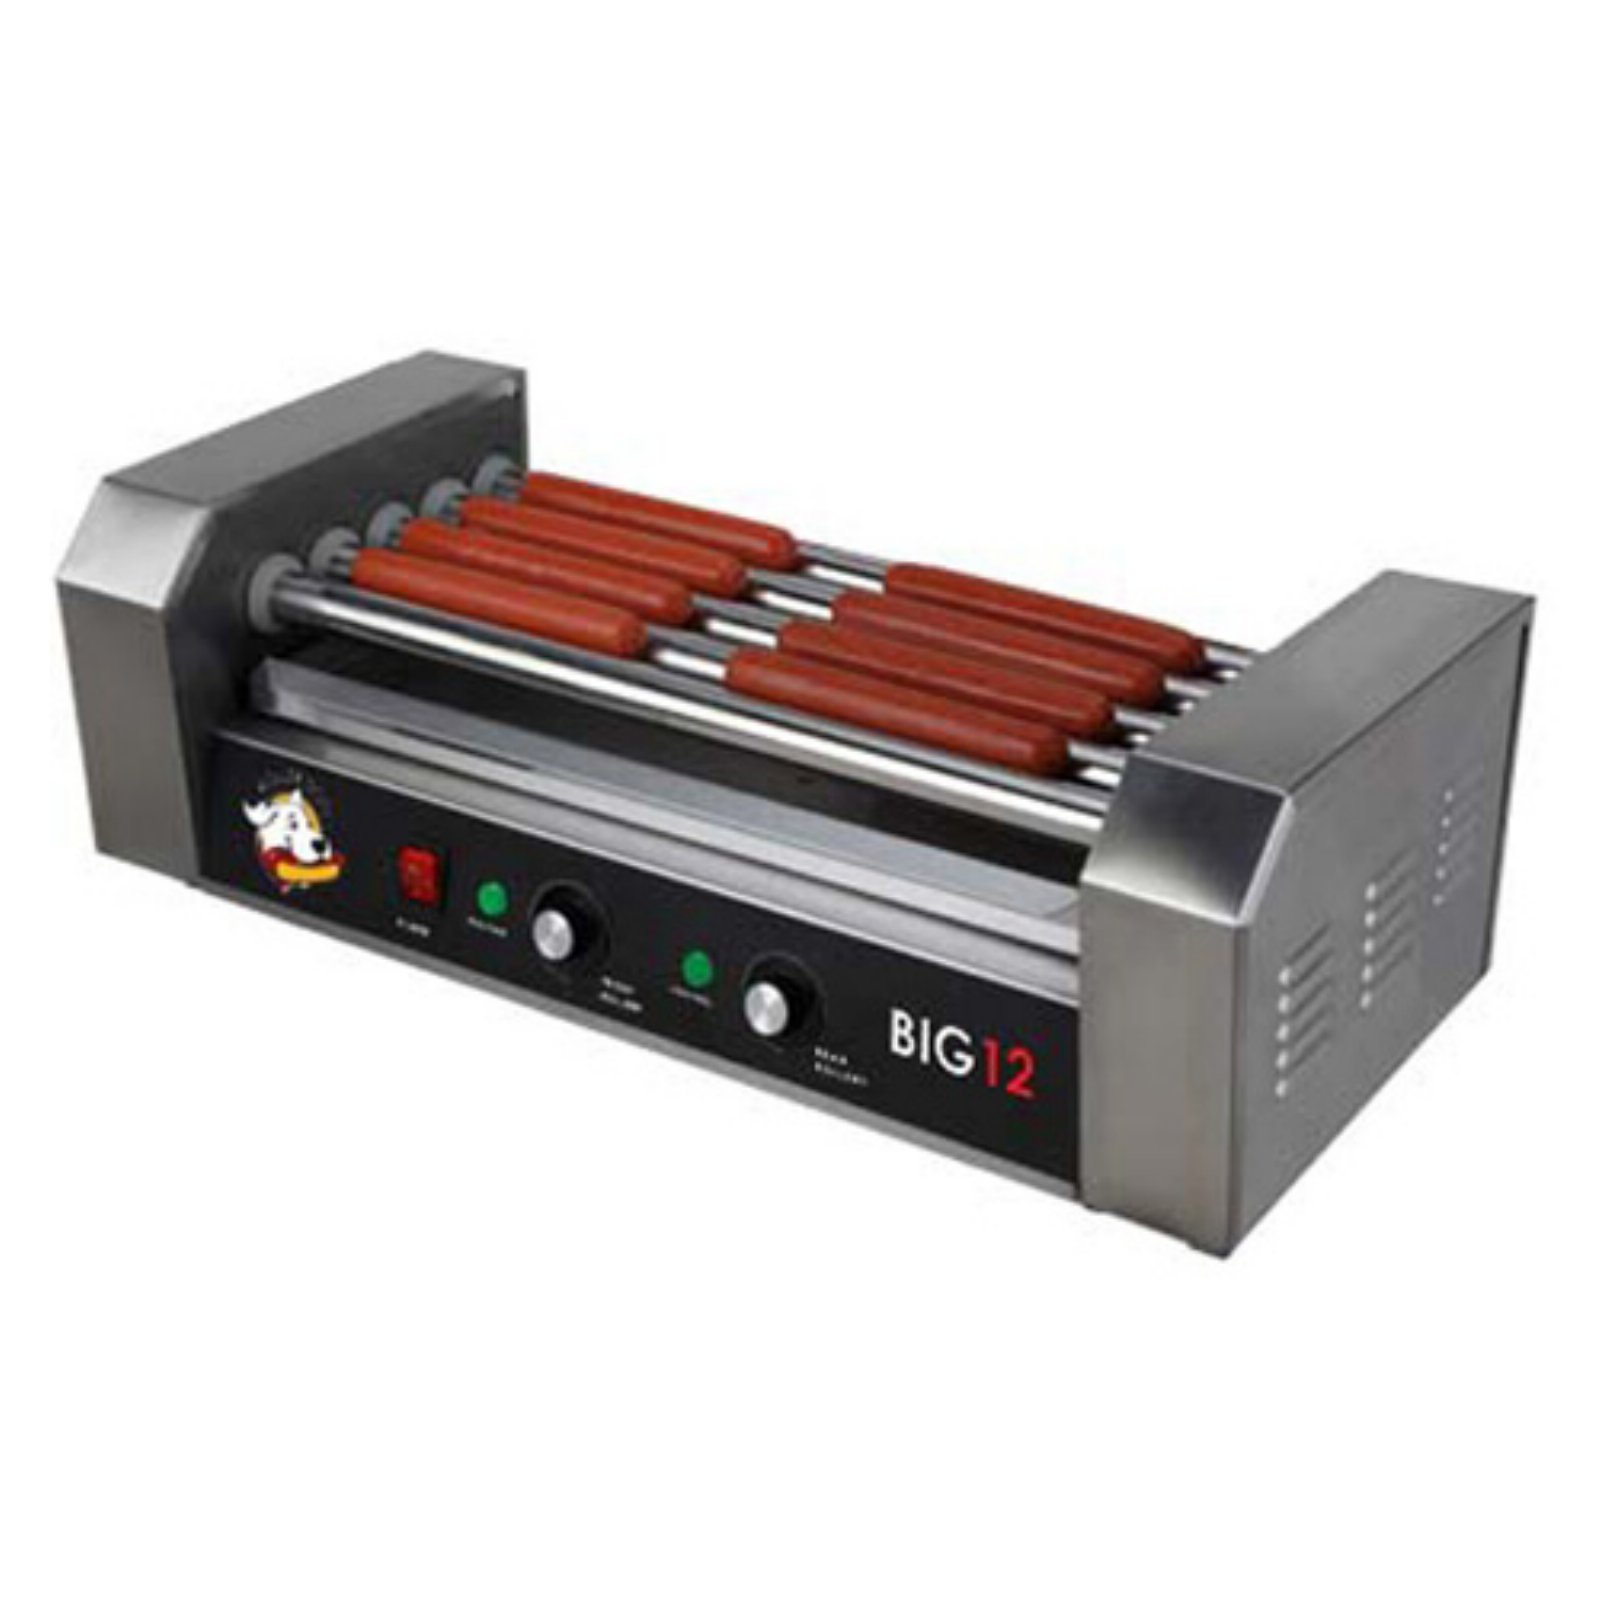 RollerDog Big 12 Stainless Steel Hotdog Roller with Drip Tray